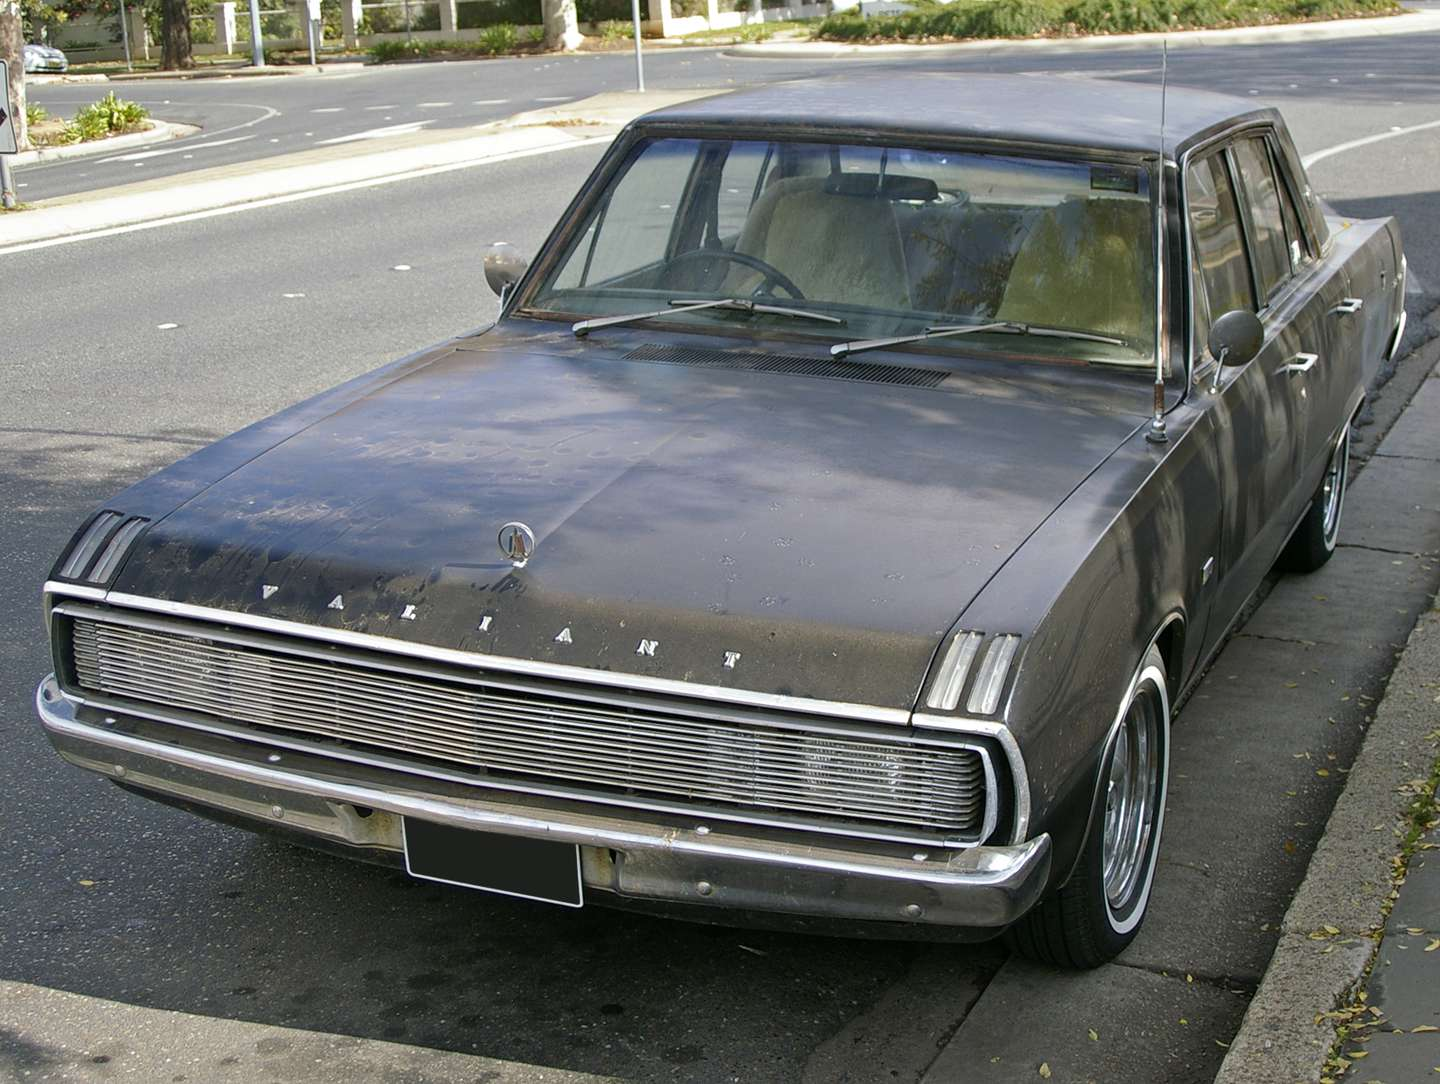 Chrysler Valiant #9002276